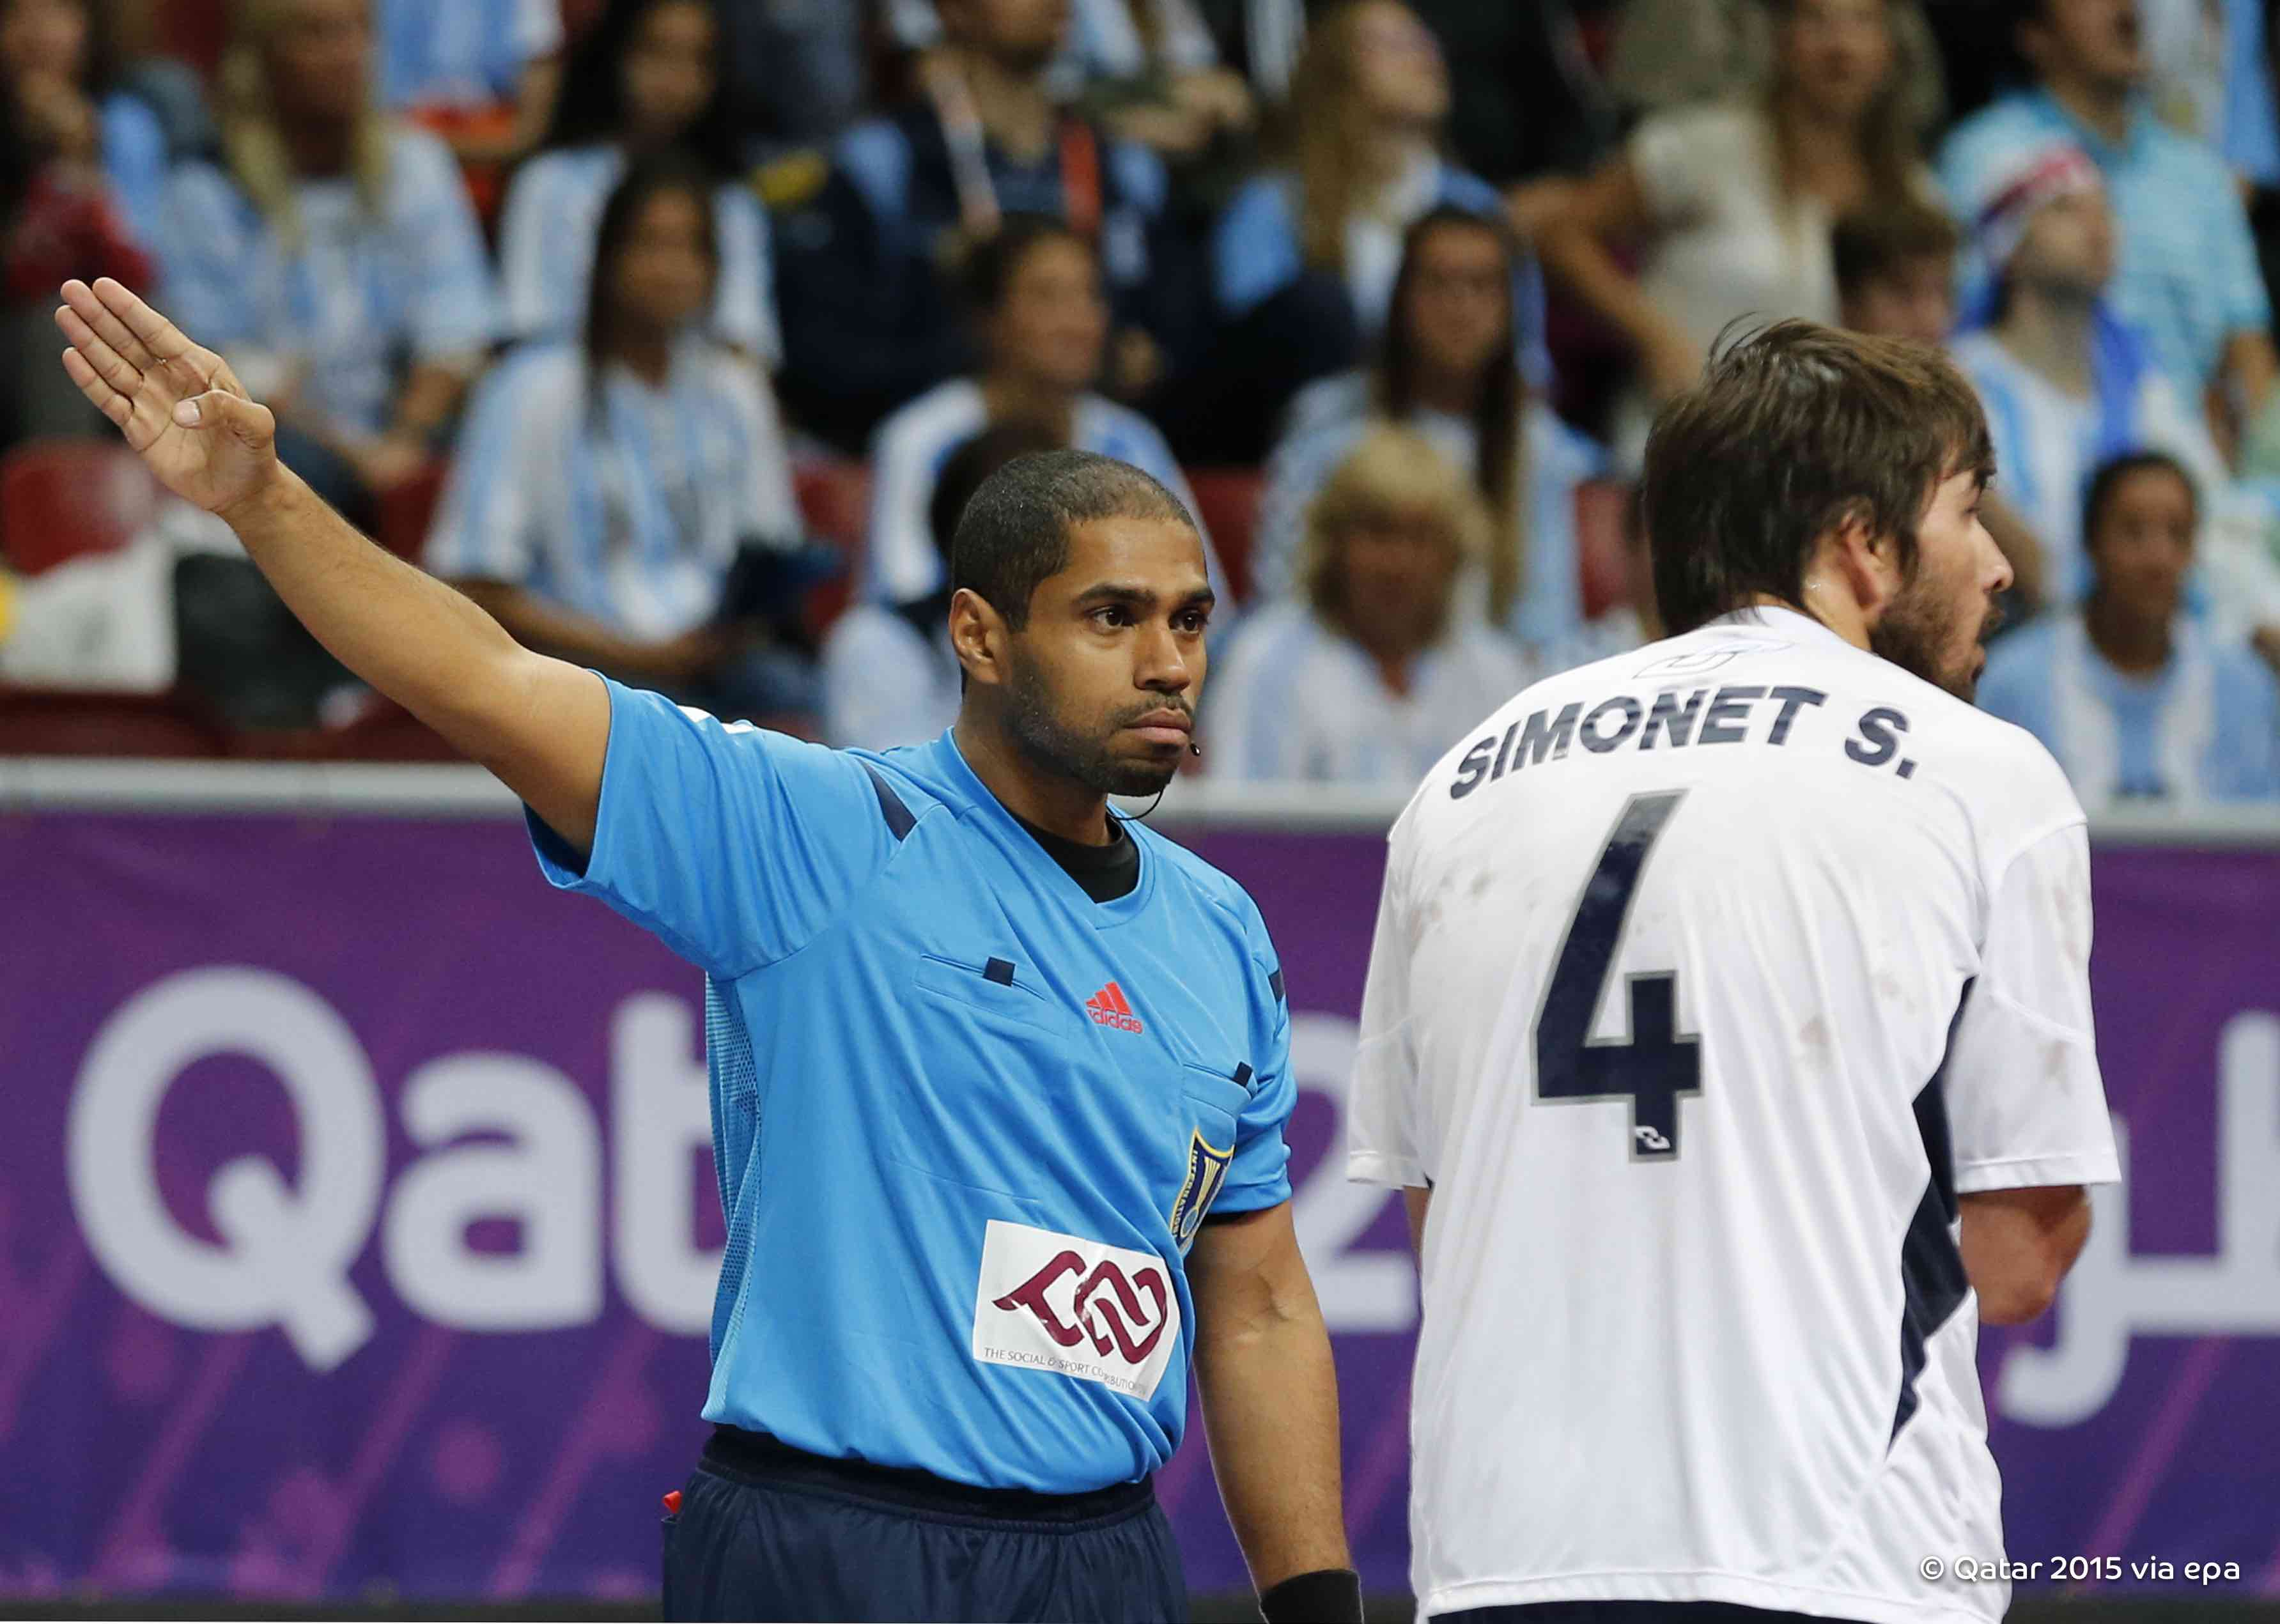 Argentina's Sebastian Simonet was sent off after quarter of an hour of the crucial qualifier with Russia, but his side held on to win 30-27 and claim a place in the last 16 ©Qatar2015